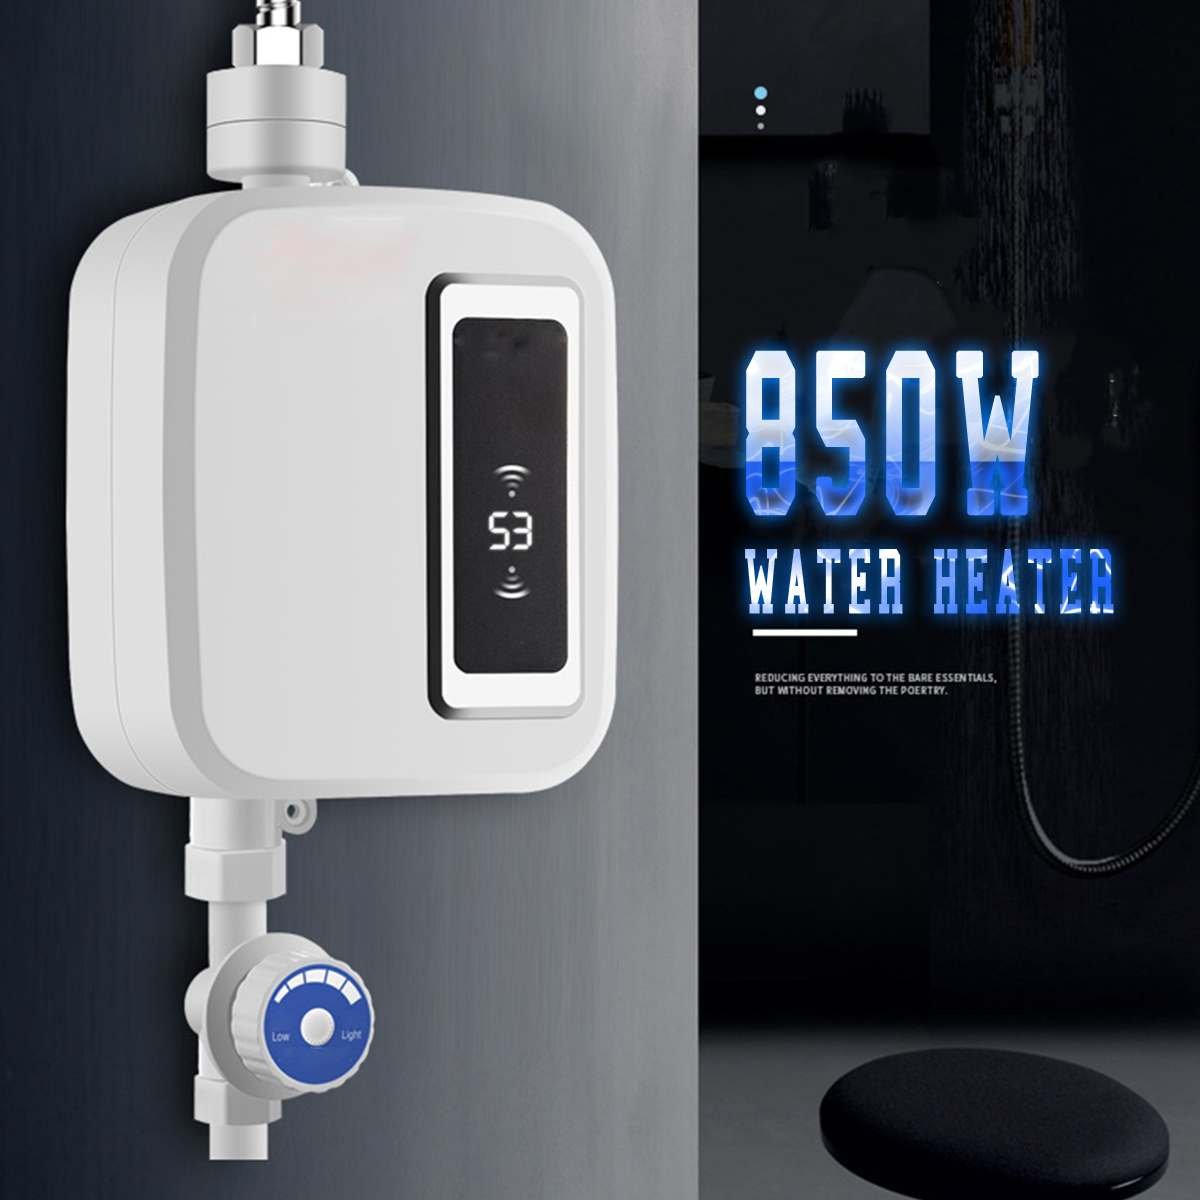 Hot Water Heater 850W Mini Electric Tankless Instant Kitchen Faucet Tap Heating Stainless Steel Constant Temperature